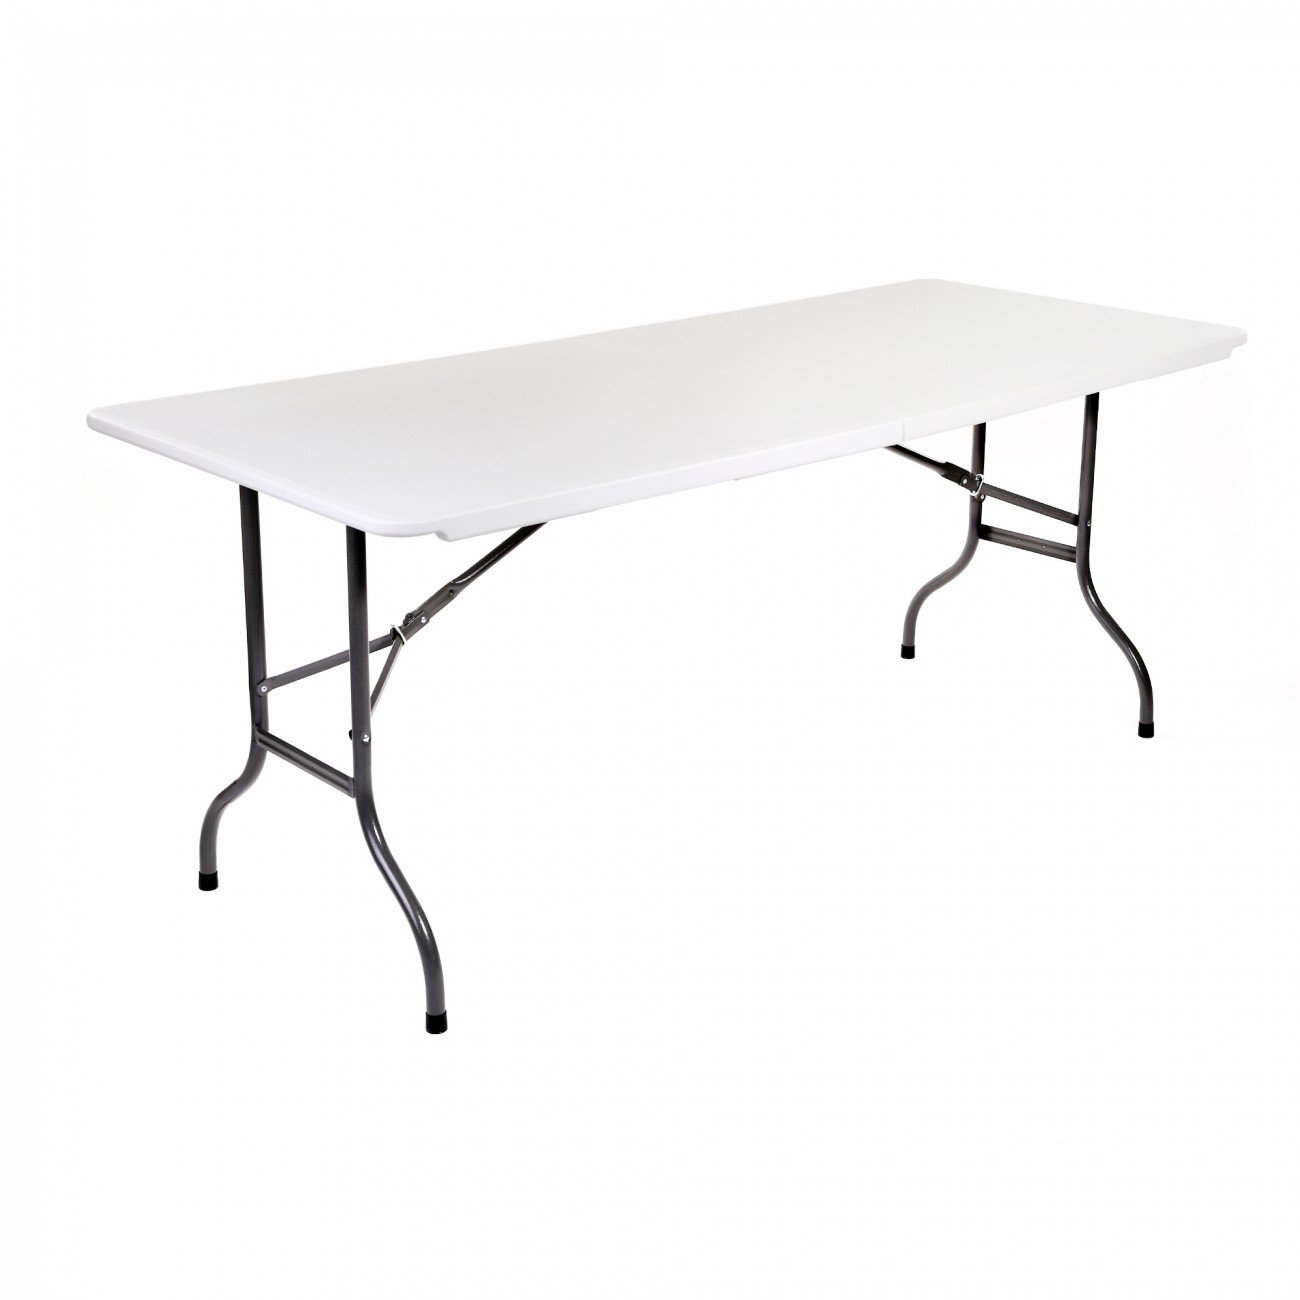 Acheter table pliante table pliable table rabattable table - Table pliante de jardin ...